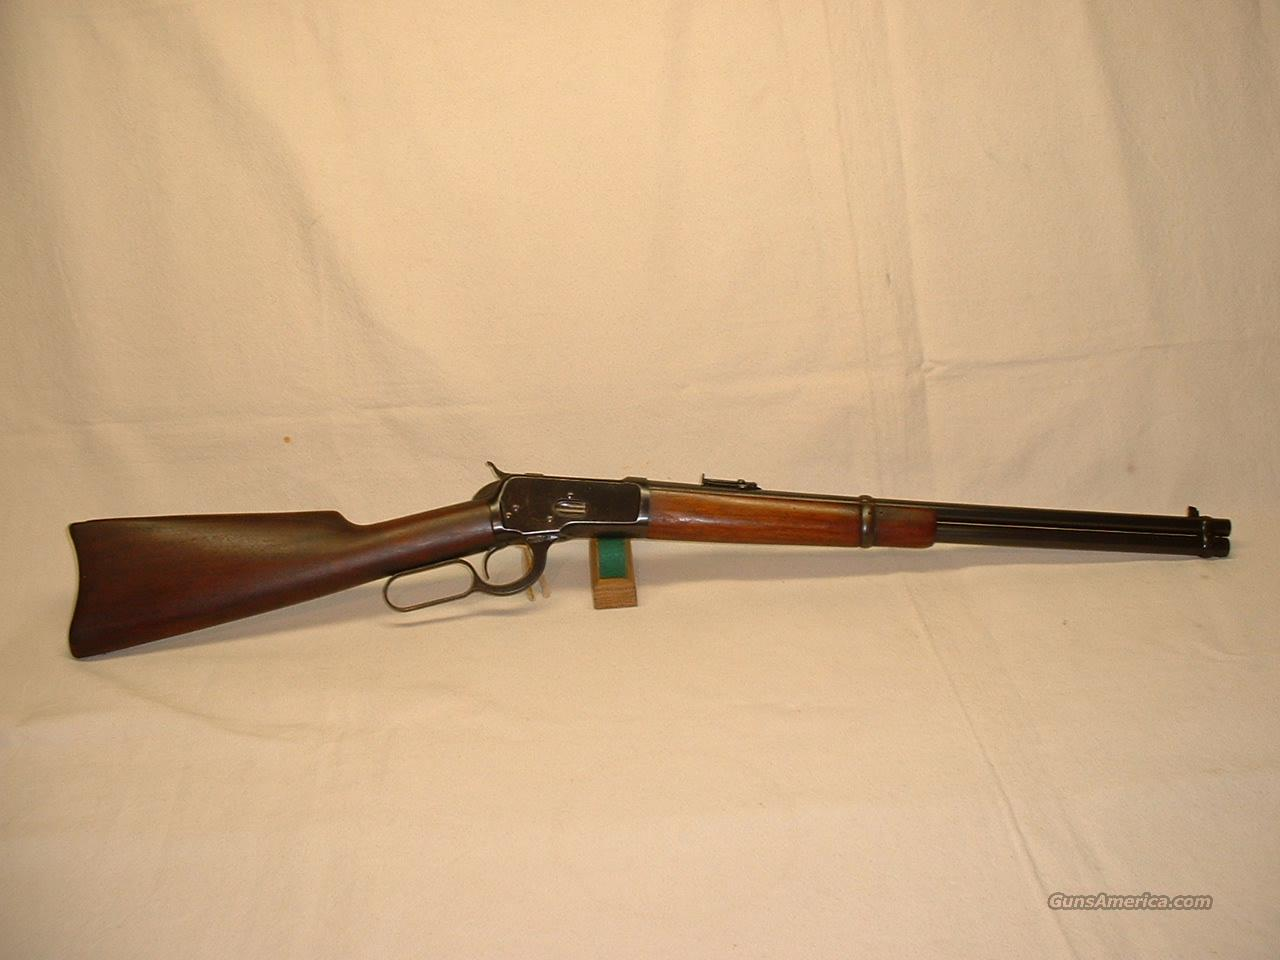 WINCHESTER MODEL  92 SRC - Cal. .38 W.C.F.  Guns > Rifles > Winchester Rifles - Modern Lever > Other Lever > Pre-64